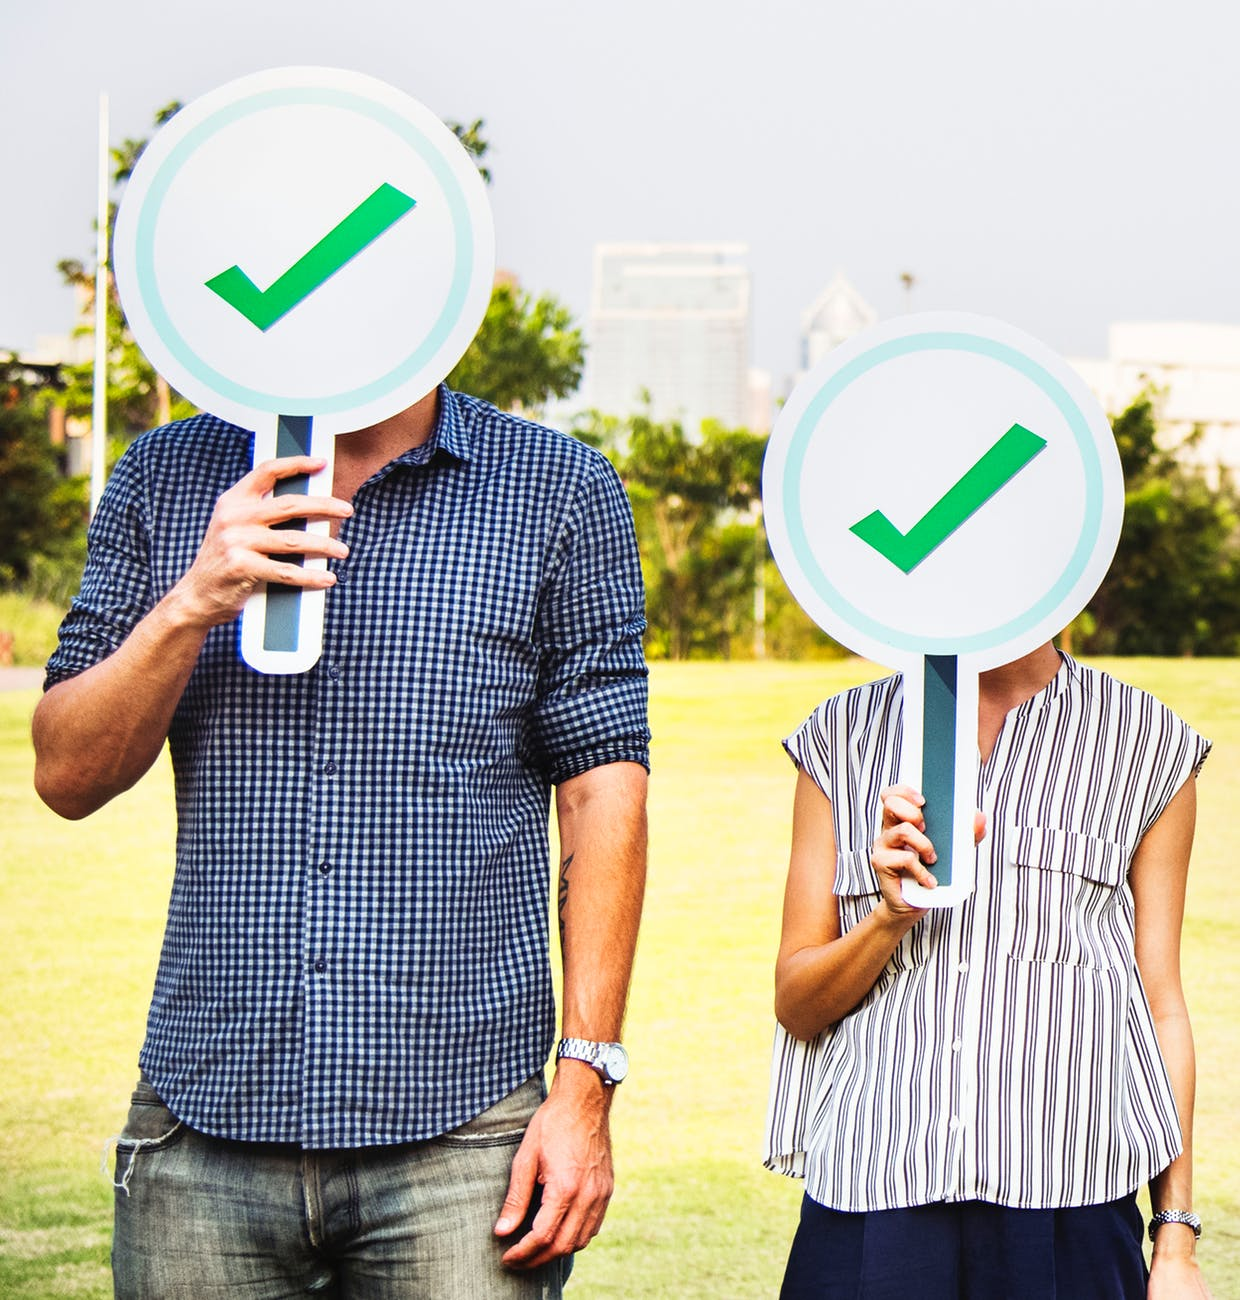 man and woman holding check signage